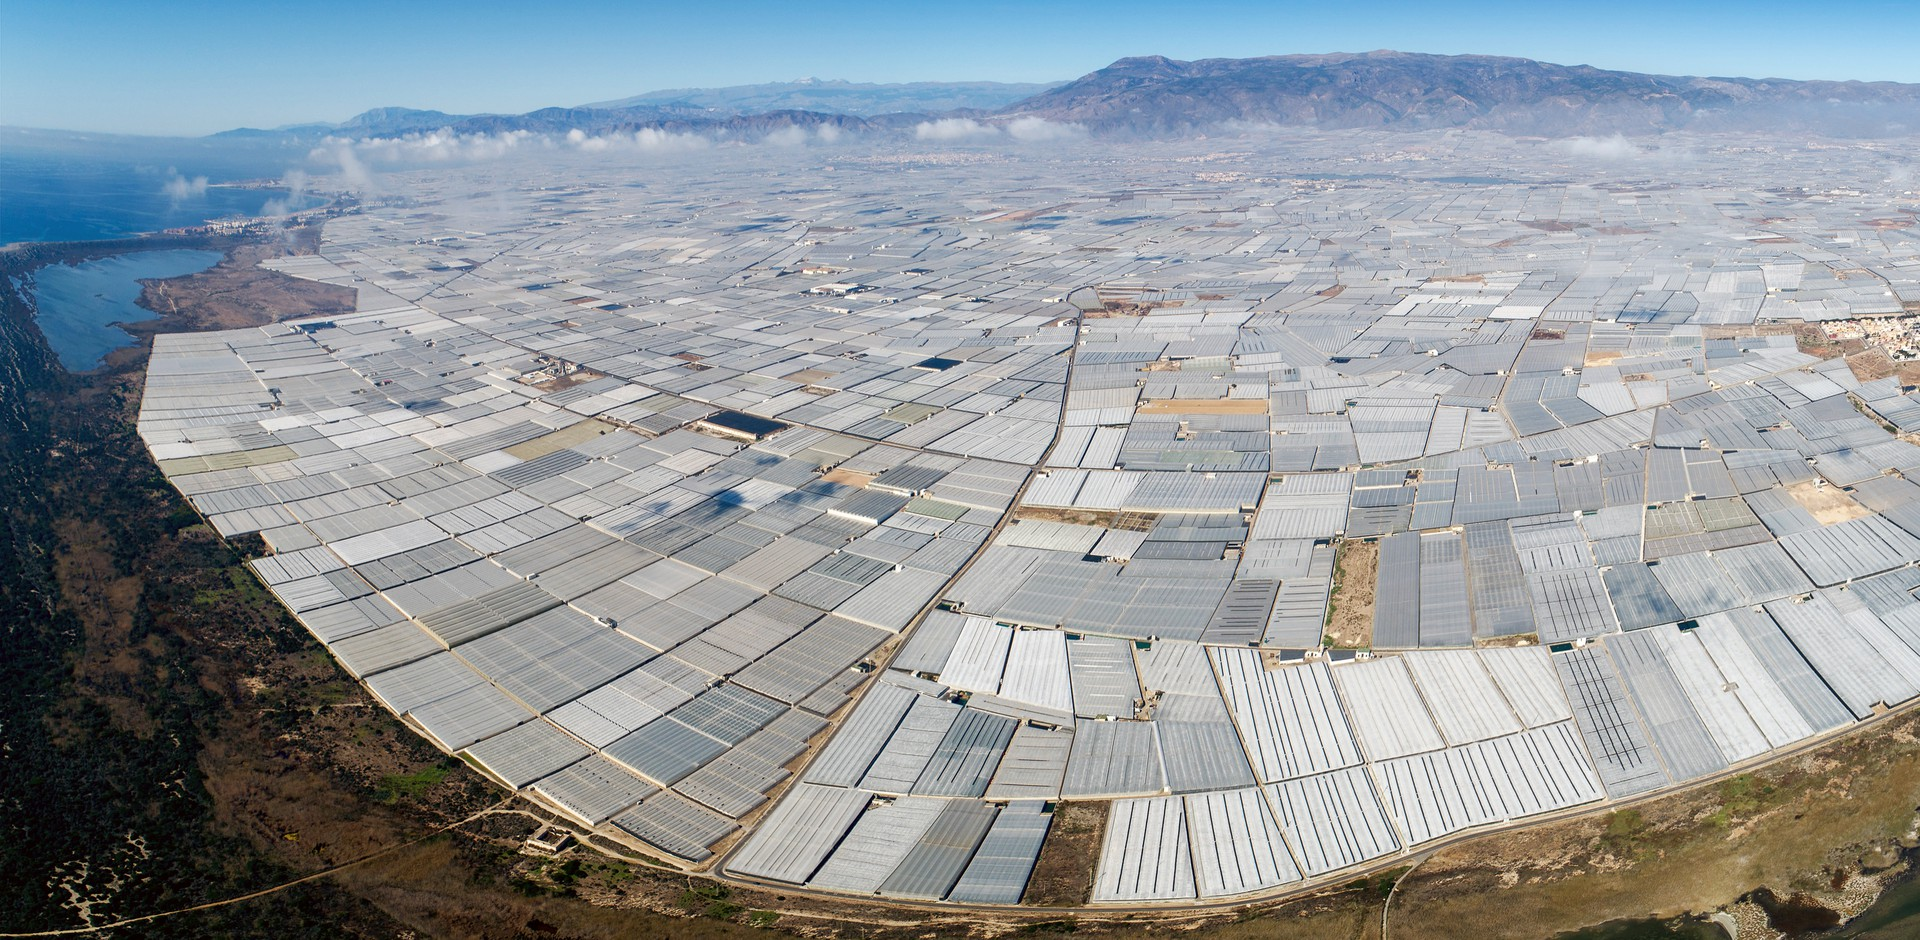 An aerial photo of greenhouses in Almería, Spain